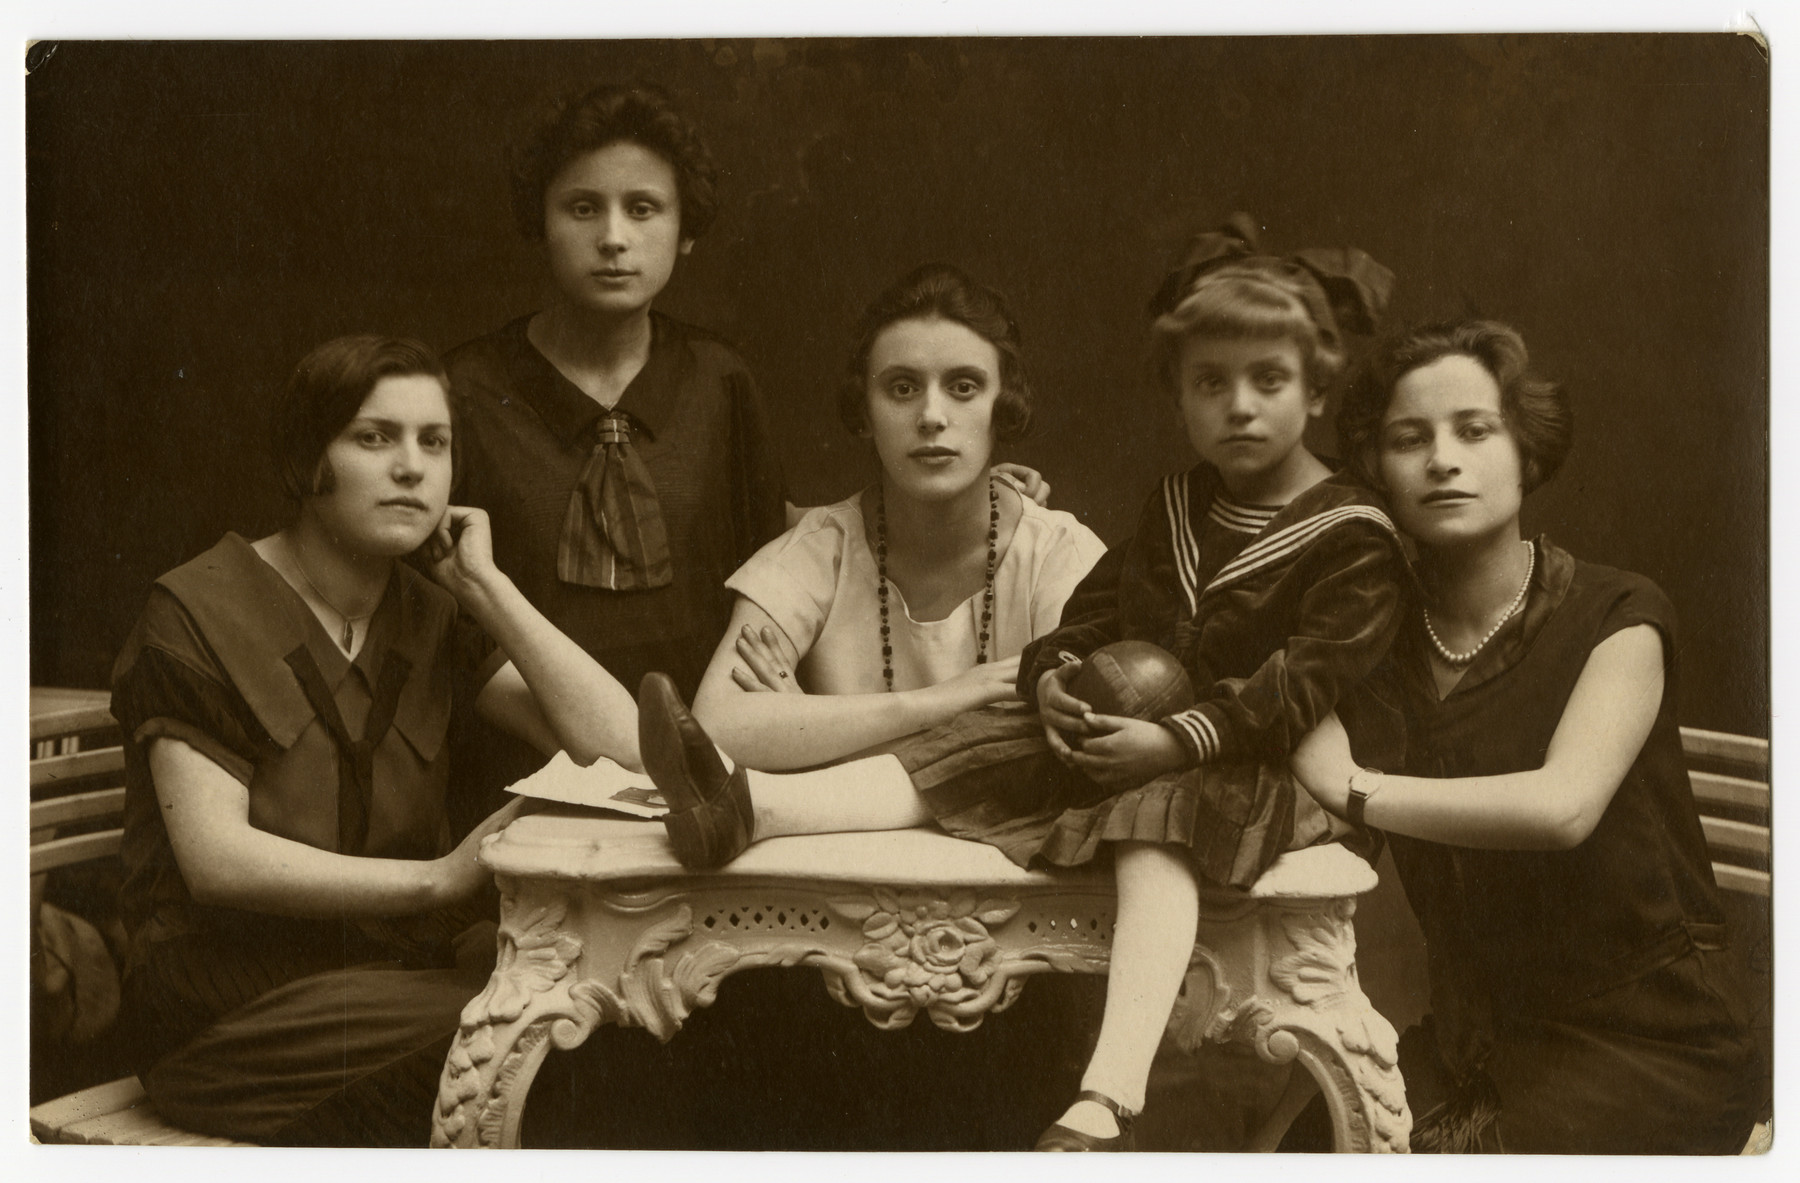 Studio portrait of five Polish Jewish children and teenagers.  Feiga Grosman is pictured on the left and Ruszka Grosman is pictured second from the right.